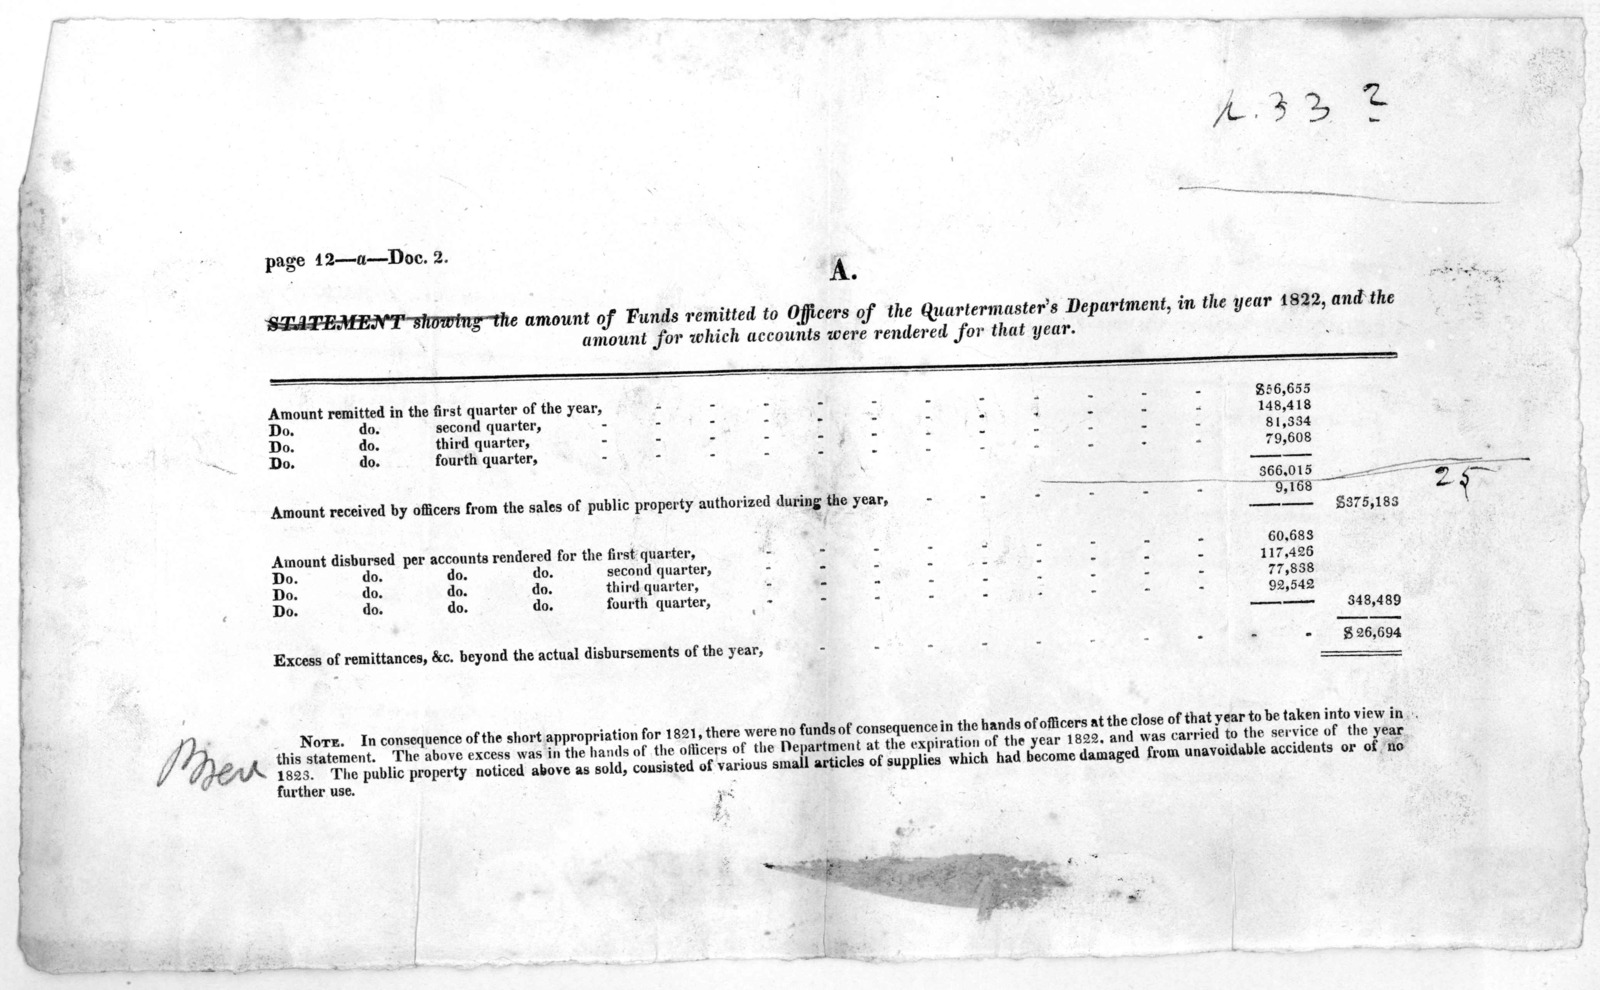 Statement showing the amount of funds remitted to officers of the Quartermaster department, in the year 1822, and the amount for which accounts were rendered for that year.